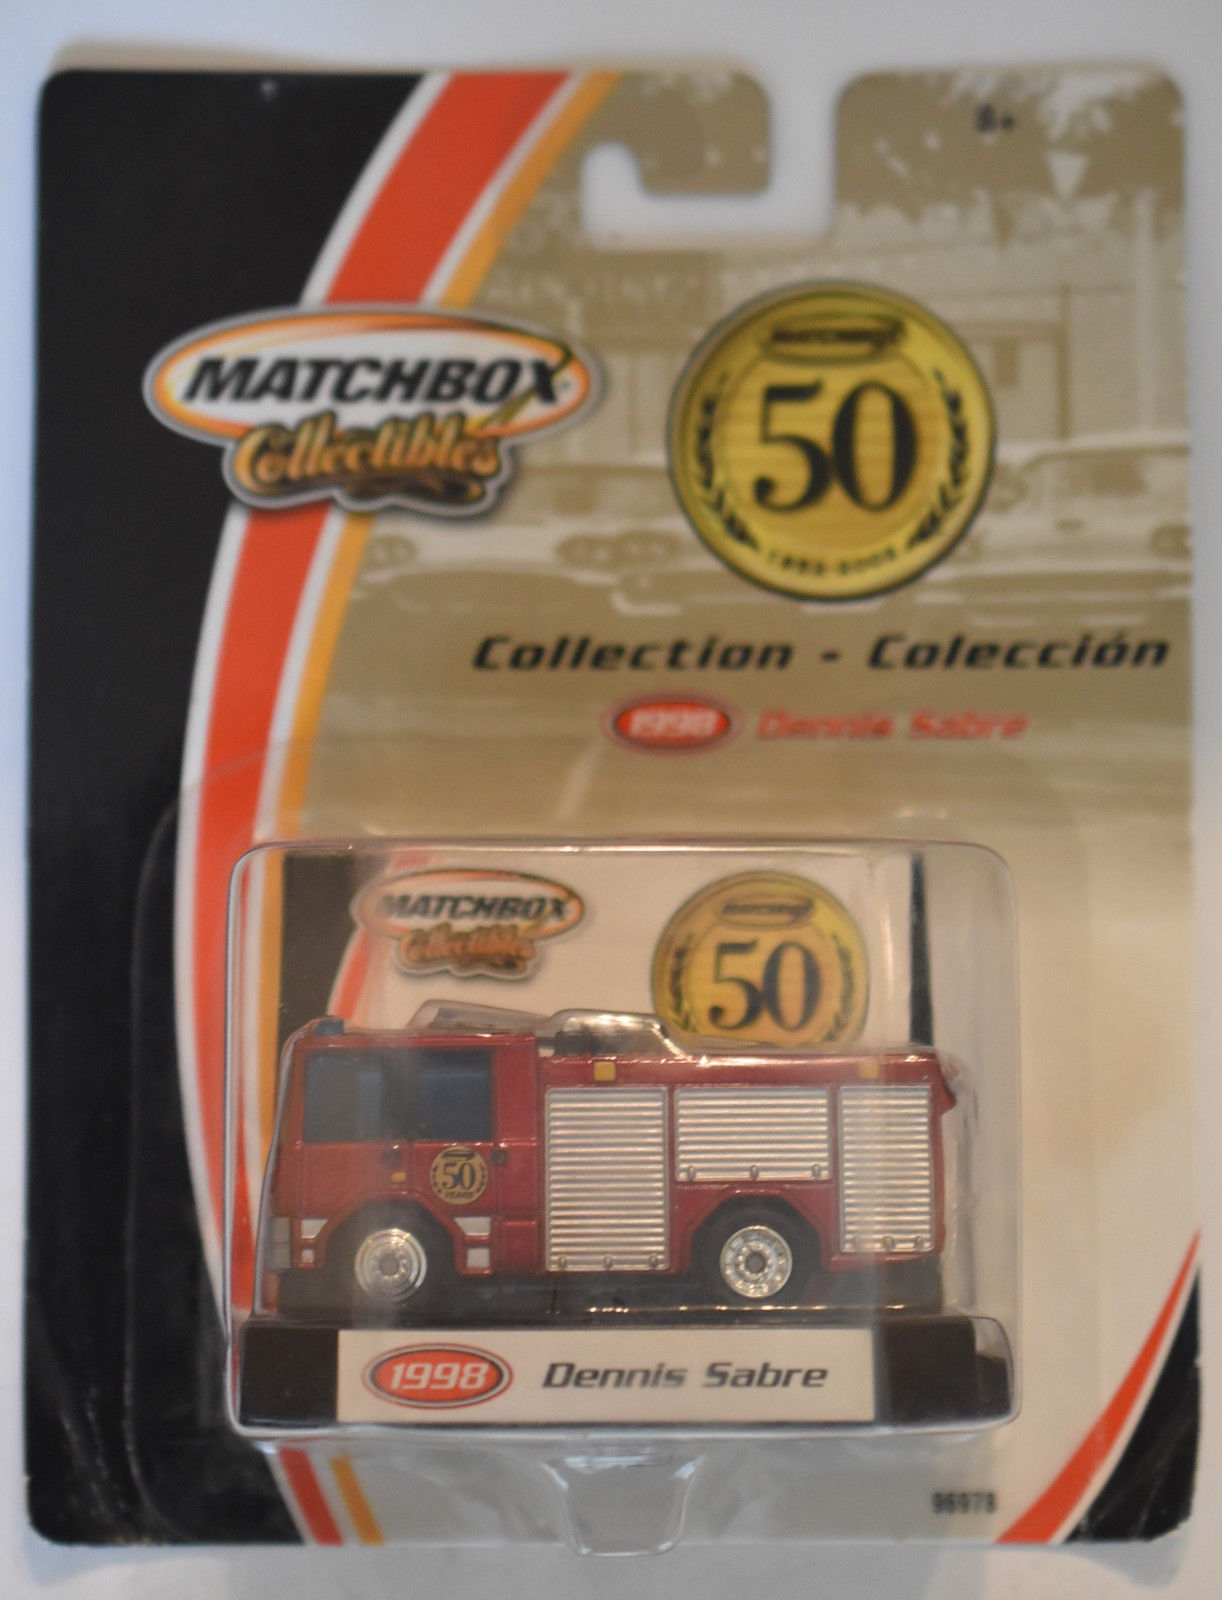 MATCHBOX 50 YEARS COLLECTIBLES 1998 DENNIS SABRE